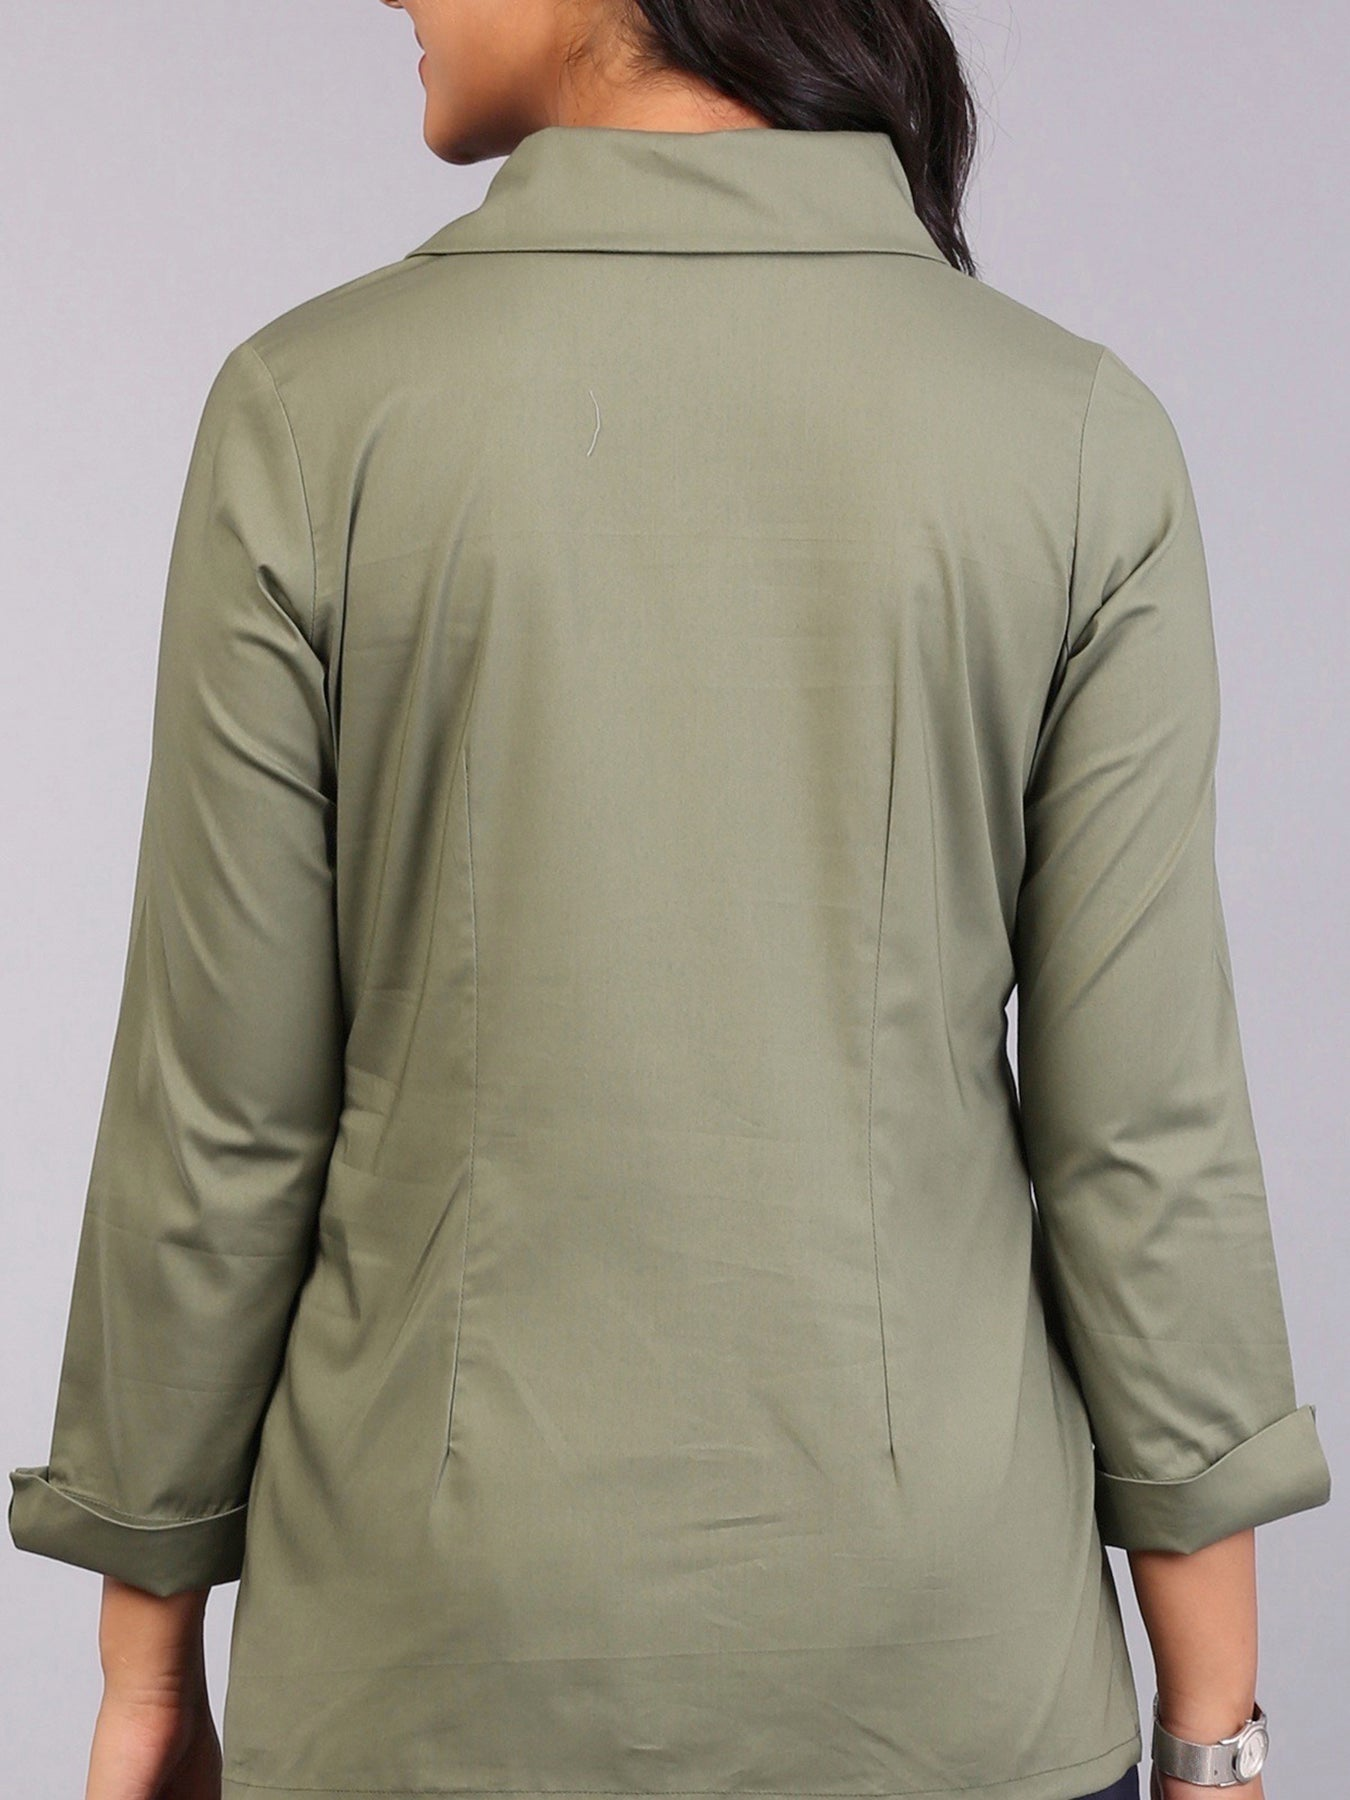 Diagonal Placket Shirt - Olive